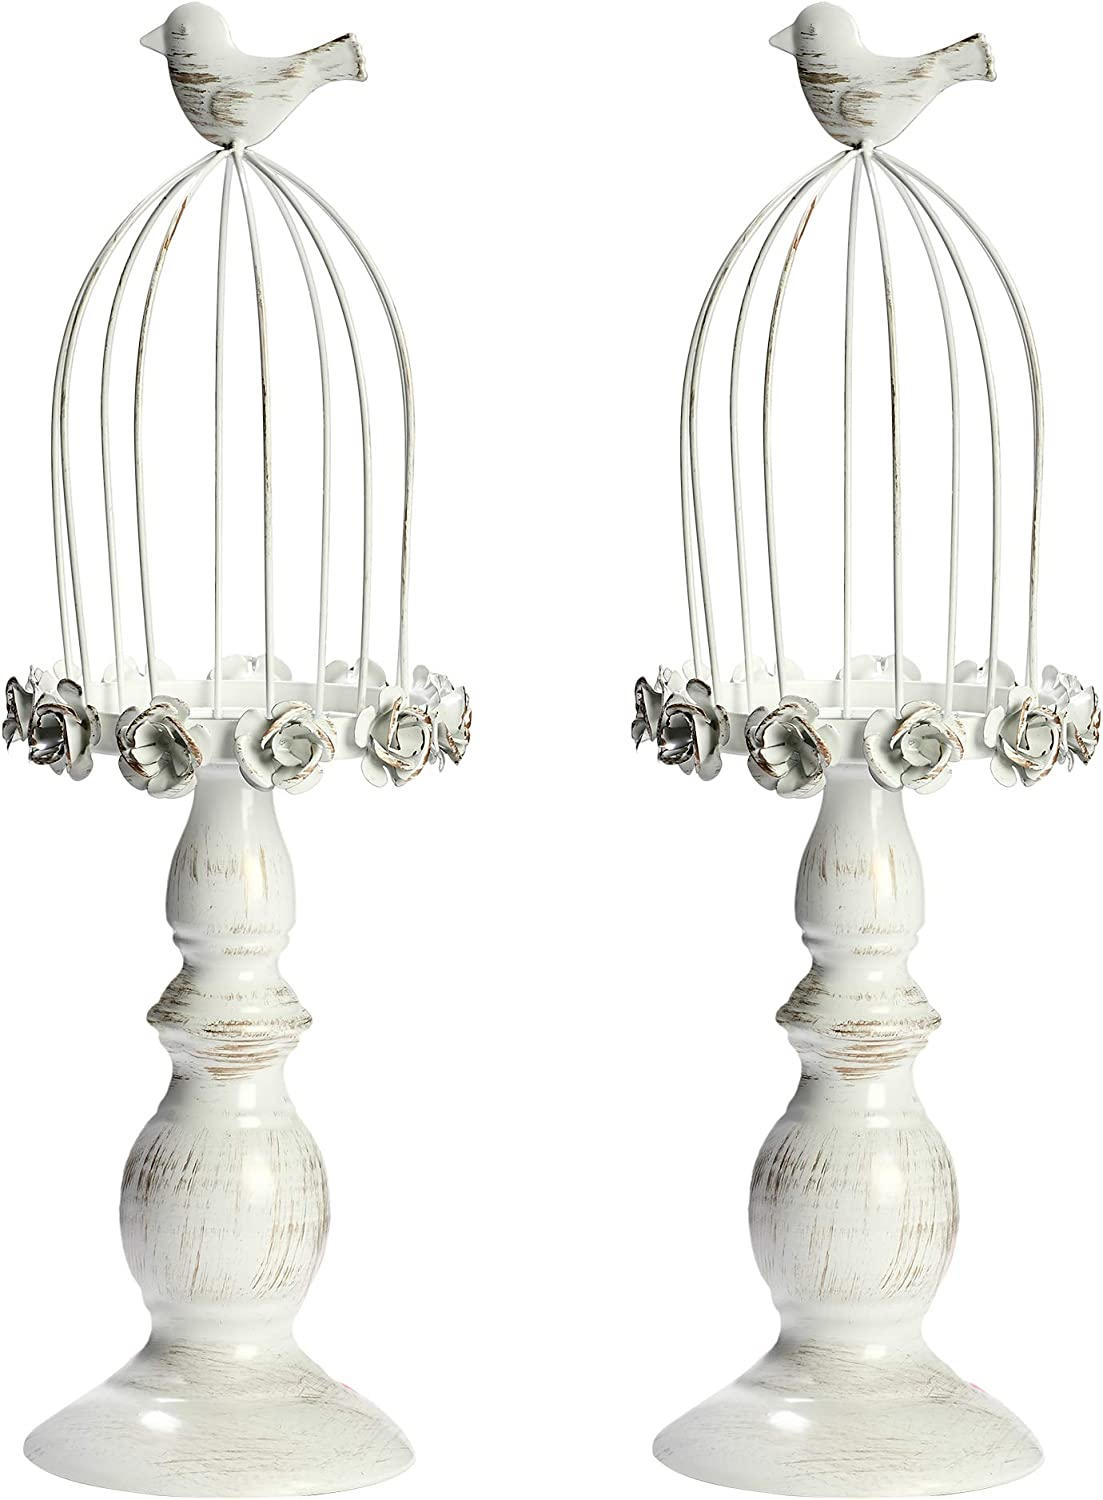 Troudipity Pillar Candle Holder Set, 2 Pieces Vintage Metal Candleholder with Bird Cage Top, Ideal for Home Decorations and Gifts